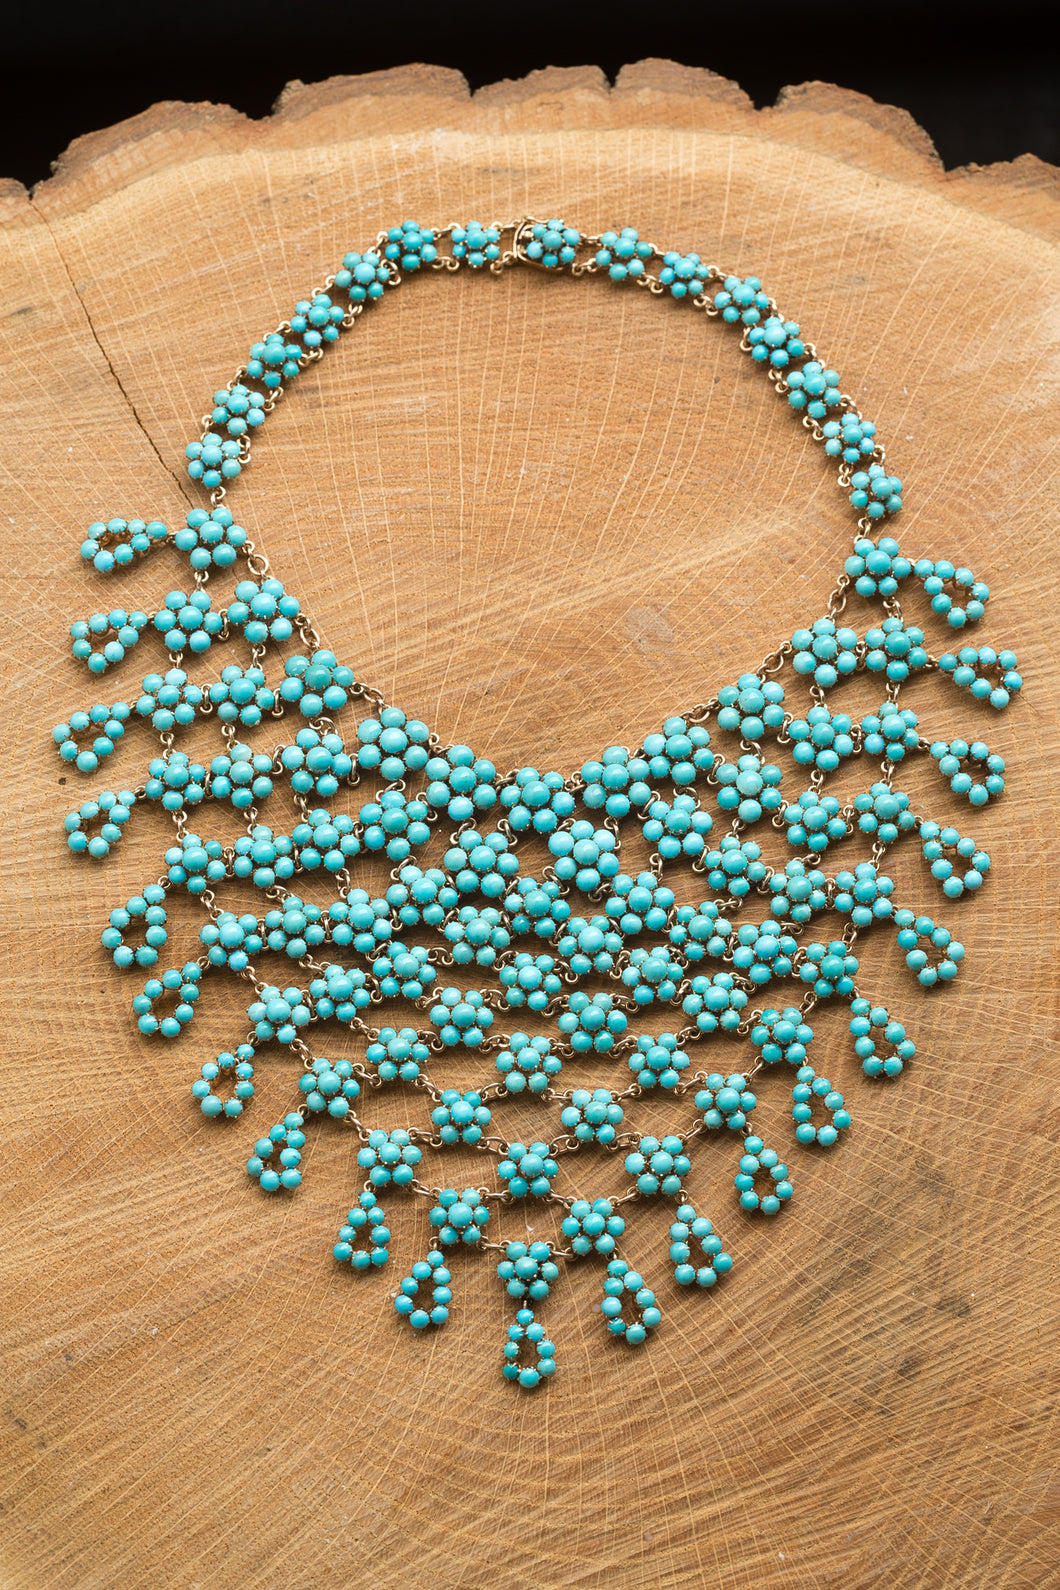 14kt Yellow Gold Turquoise Flower Bib Necklace